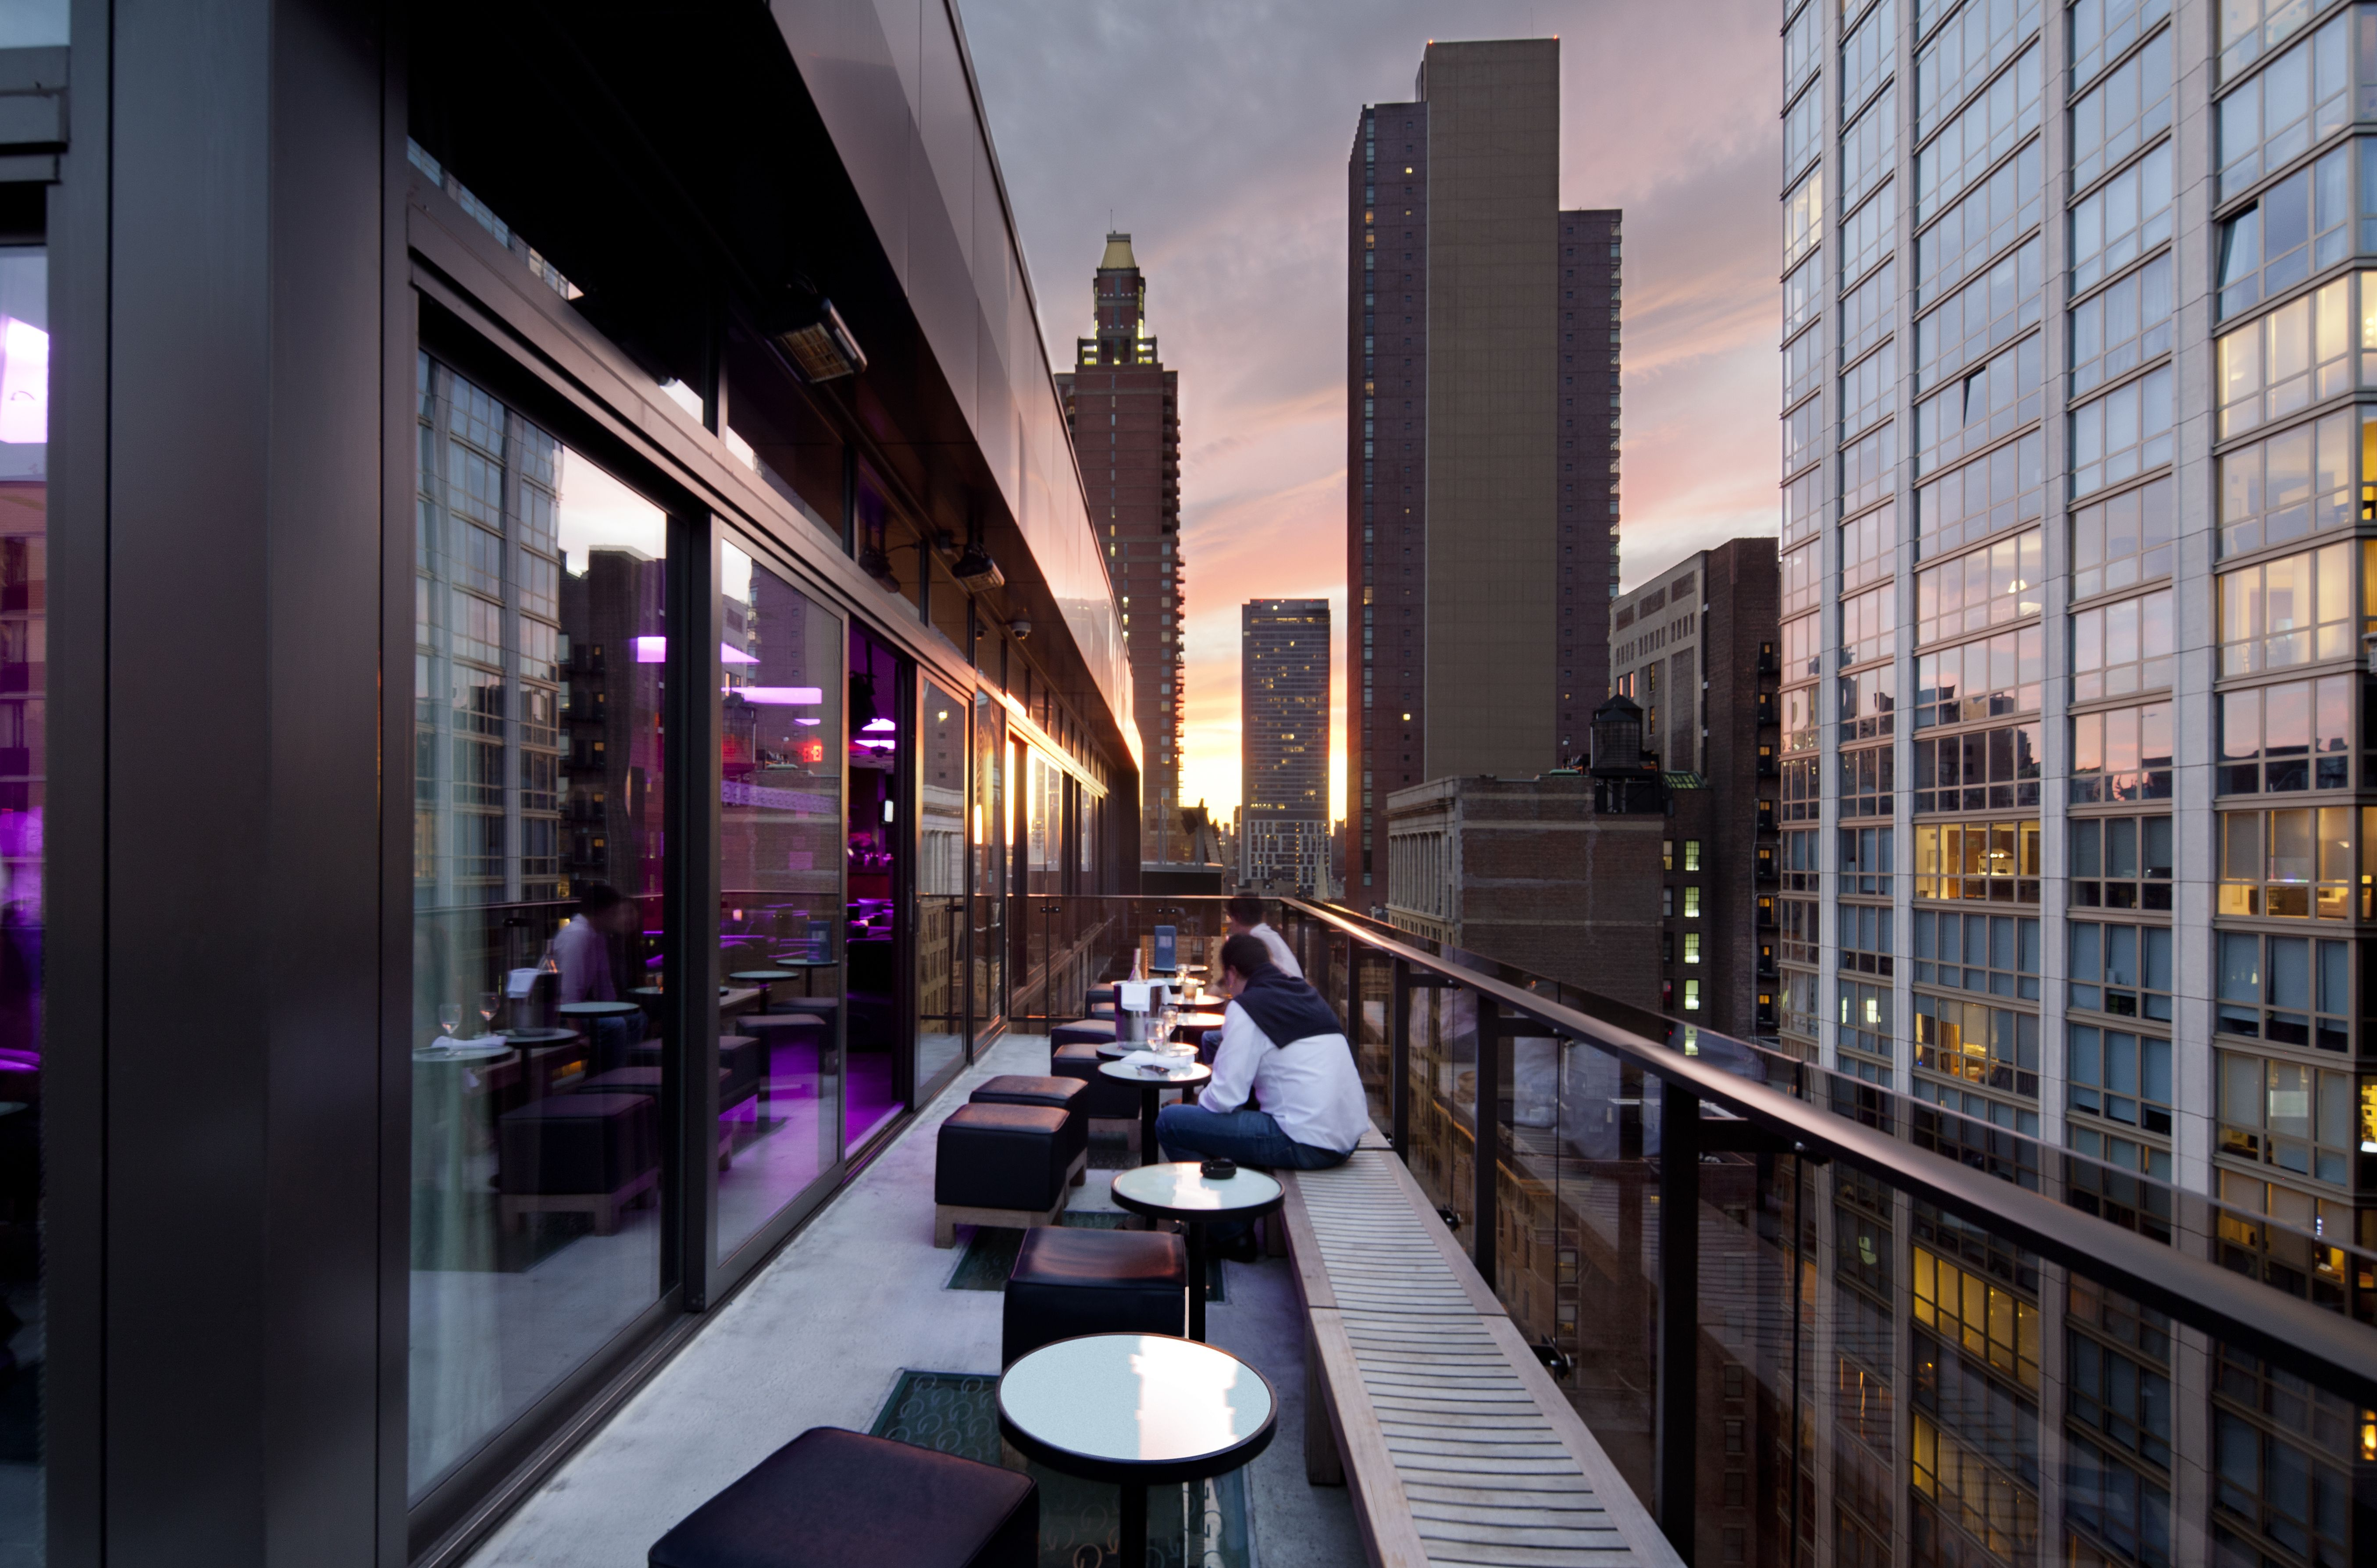 The Breathtaking View Of New York At Sunset From The Hotel